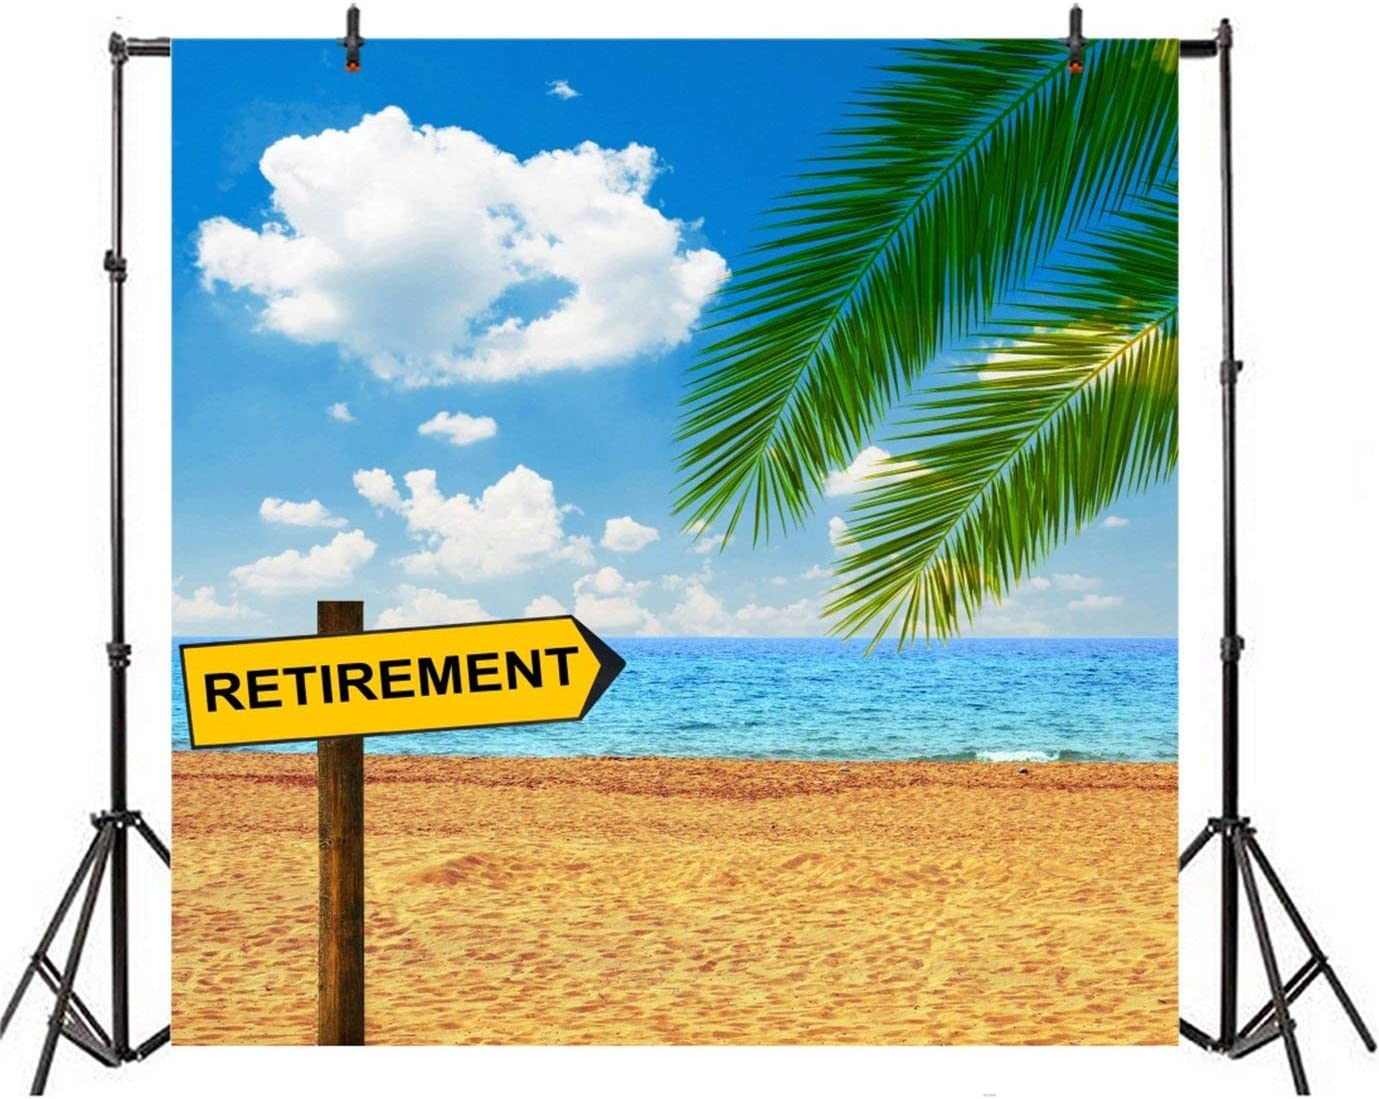 SZZWY 4x4ft Background for Retirement Wooden Indicator on Beach Photography Backdrop Life Style Enjoy Life Freedom Seaside Vacation Summer Sea Tropical Tour Photo Studio Props Polyester Wallpaper